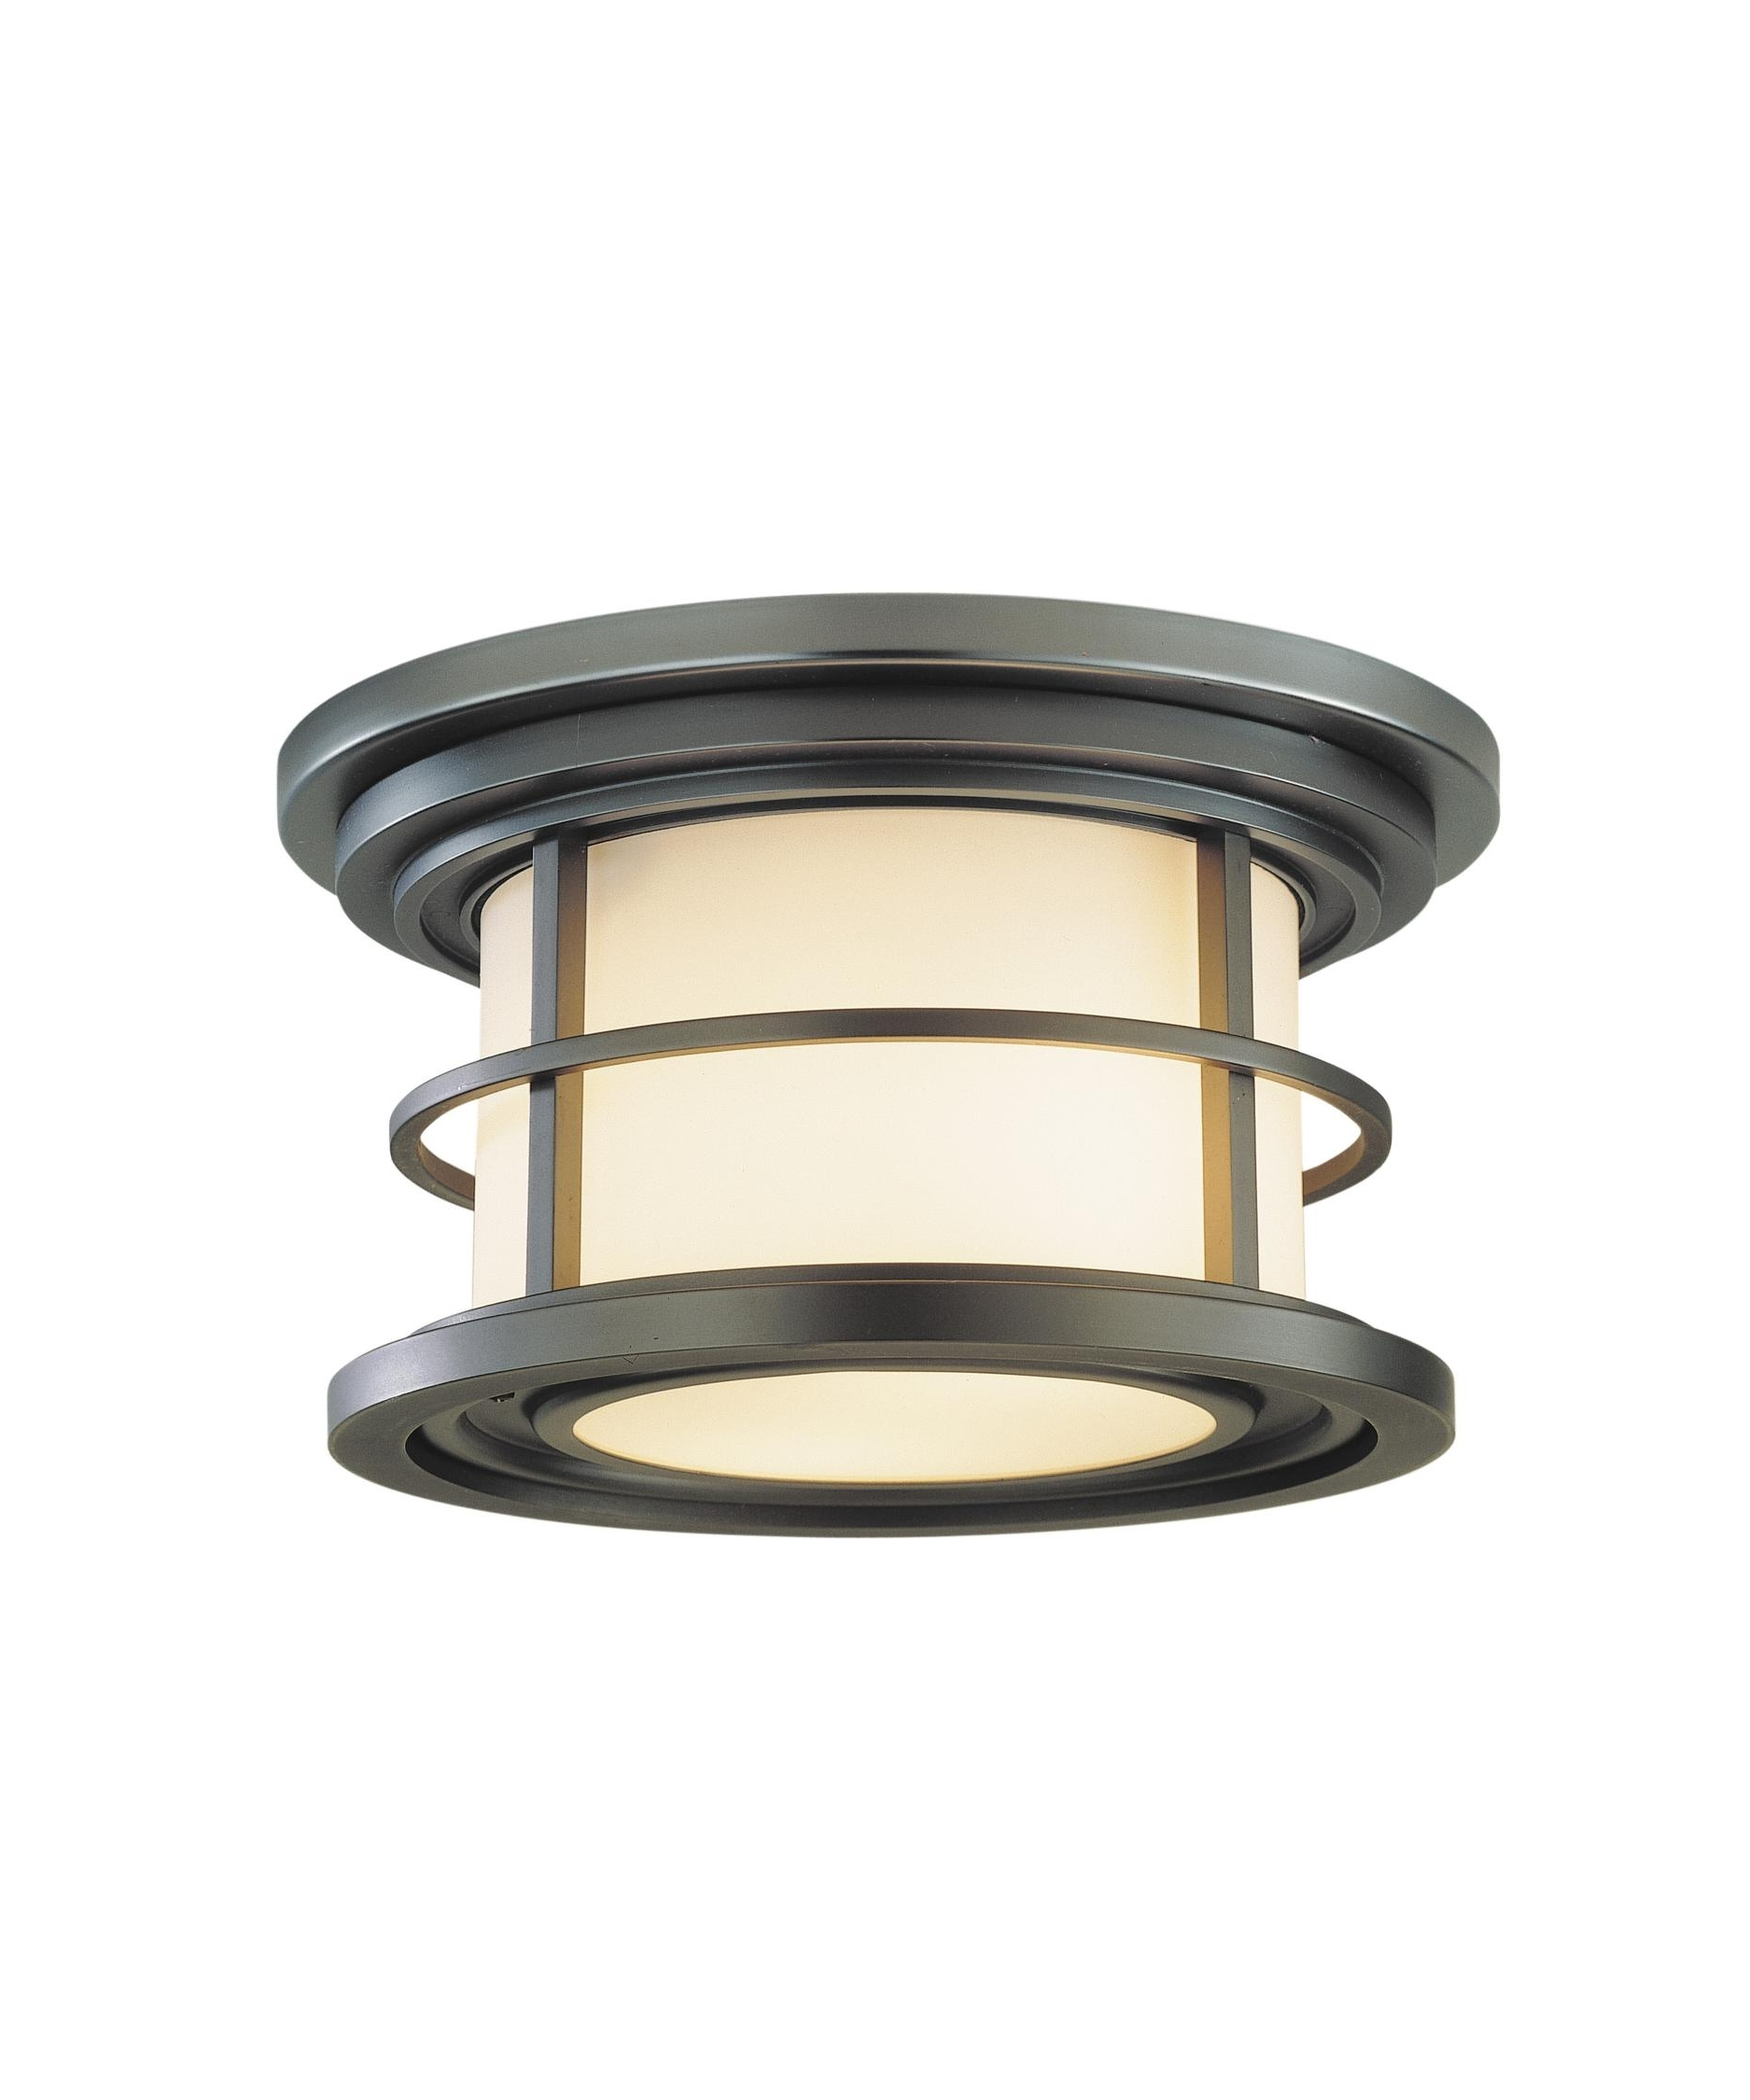 2018 Murray Feiss Ol2213 Lighthouse 10 Inch Wide 2 Light Outdoor Flush For Commercial Outdoor Ceiling Lights (View 1 of 20)